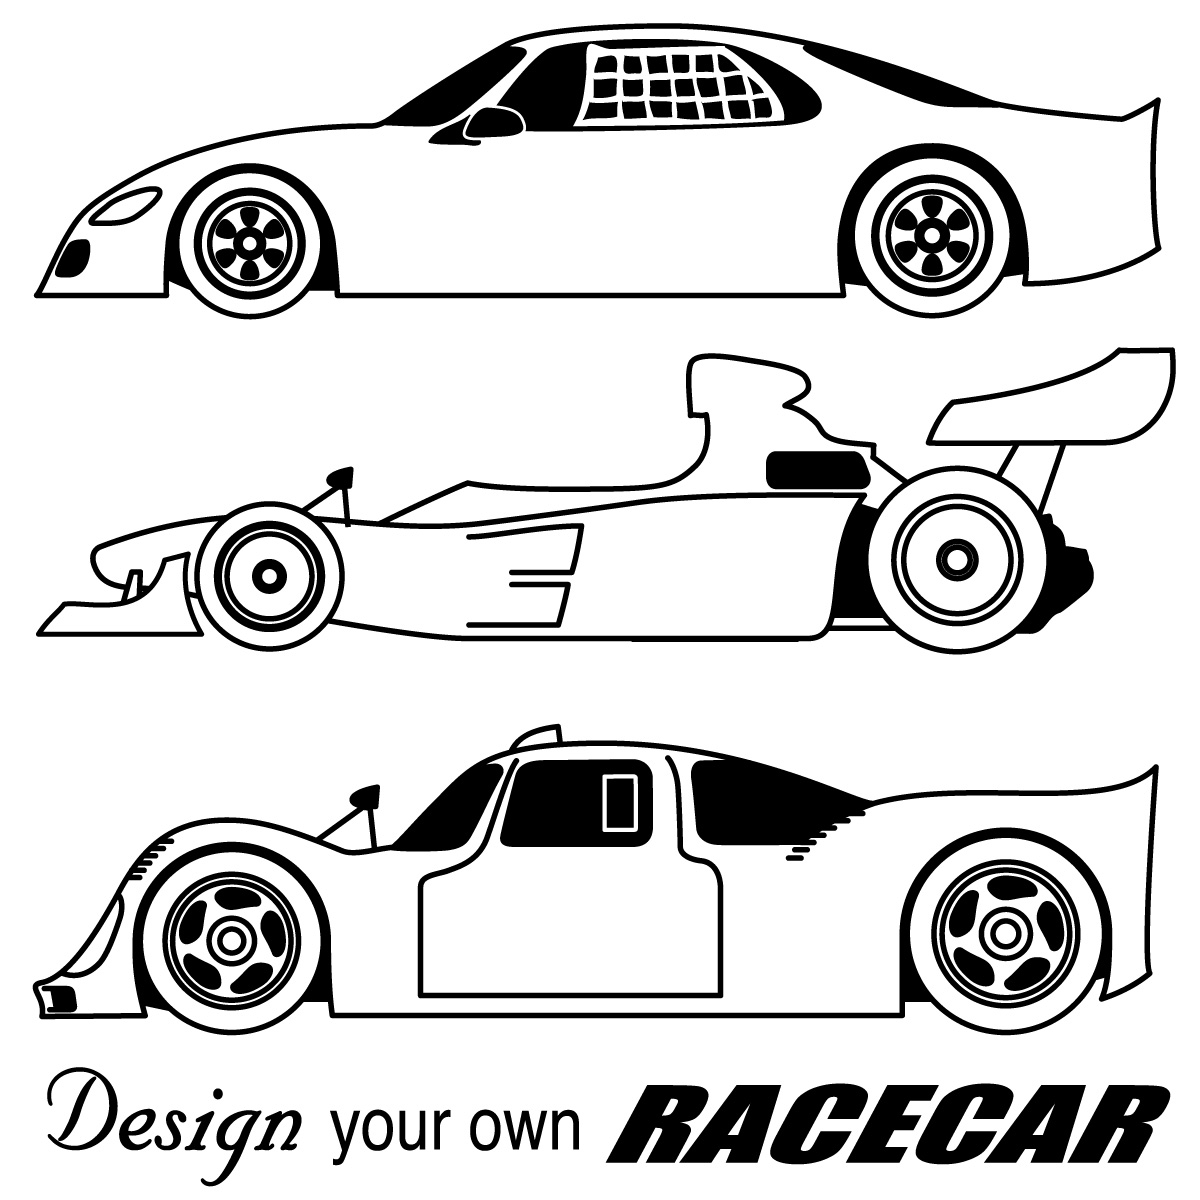 pictures of race cars to color race car coloring pages ideas whitesbelfast pictures to cars of color race